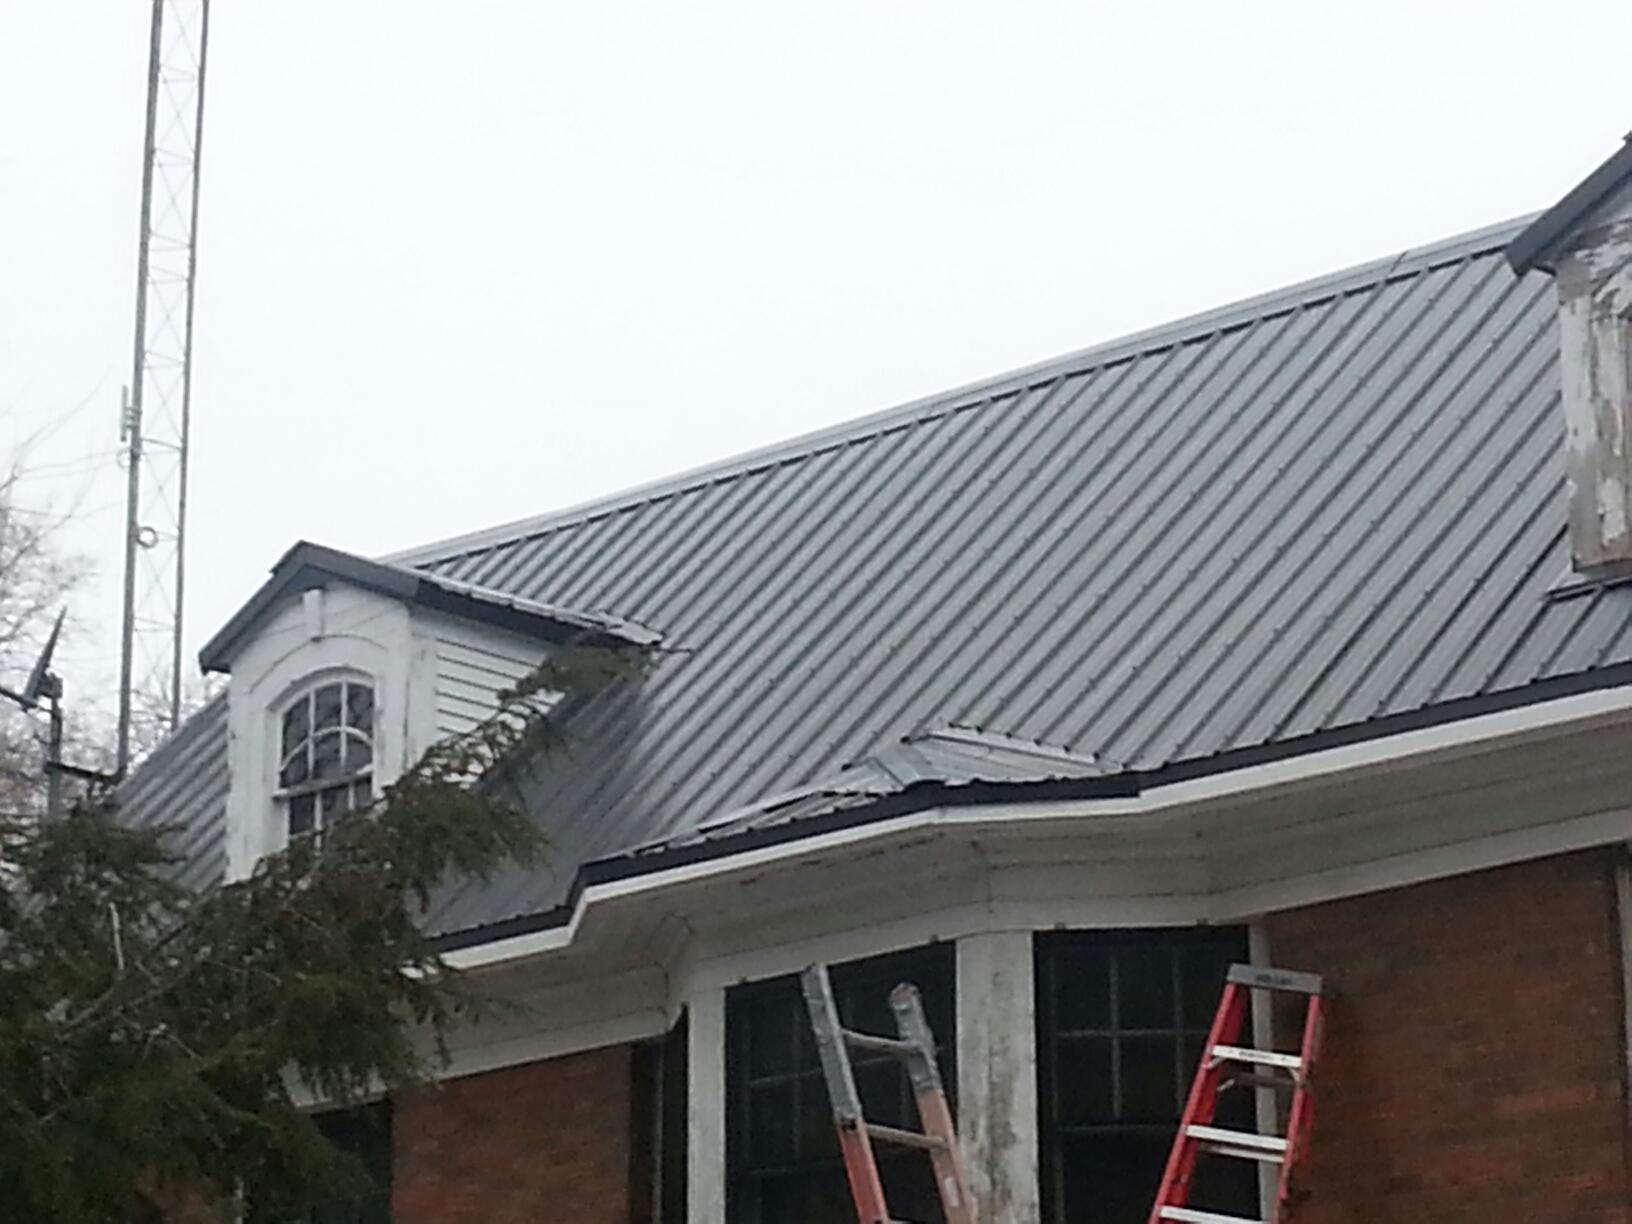 Exceptional 2012110295152226  Roof Gone Bad! Round Dormers, Anyone Have Experience With  Them? 2012123195133926.